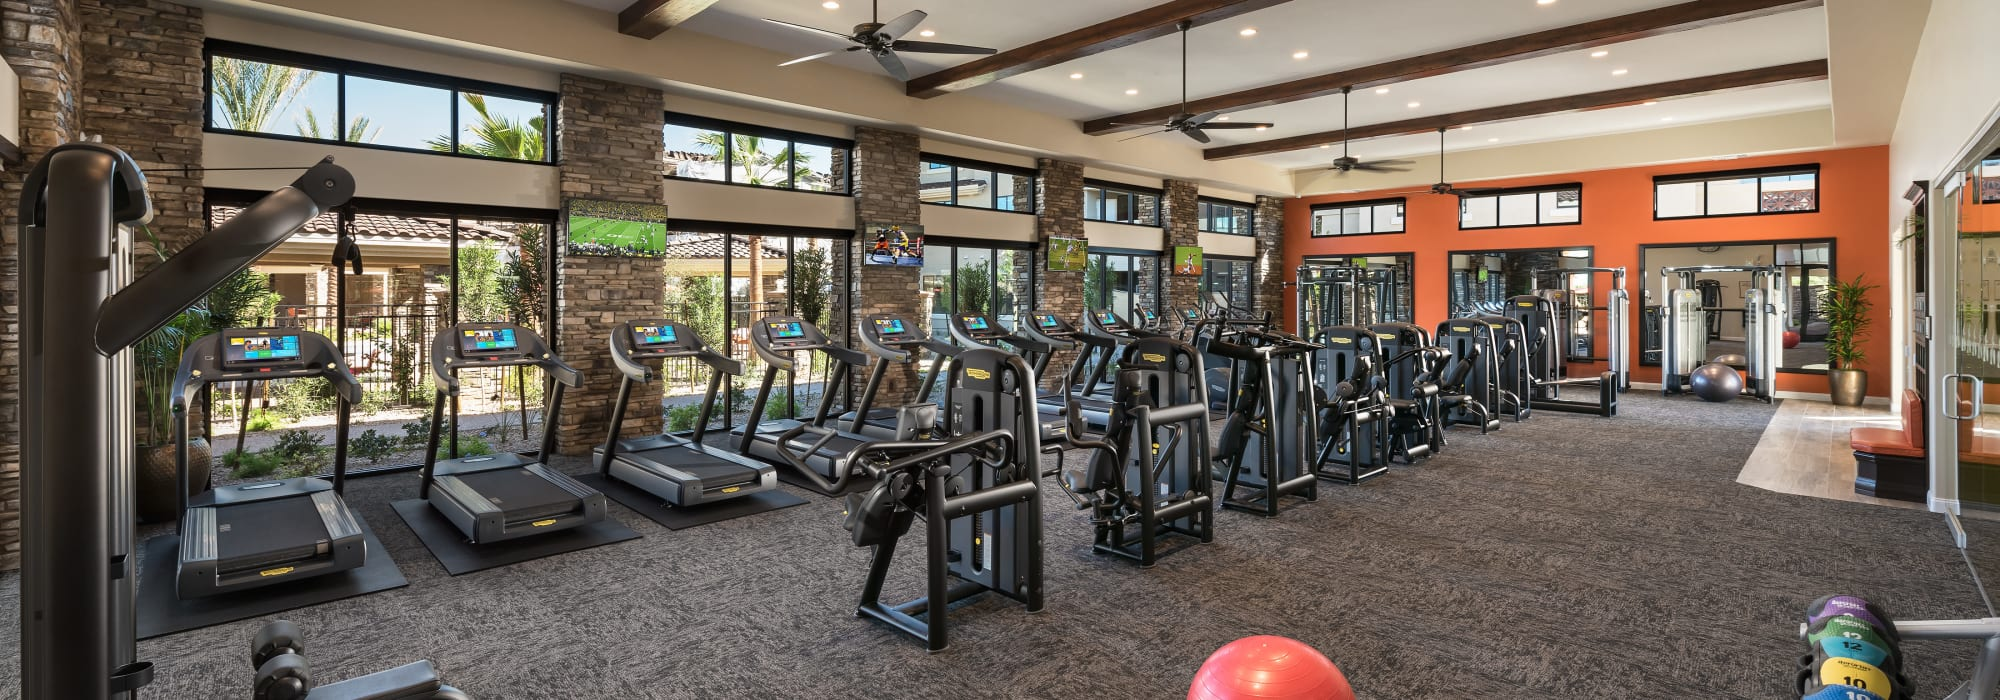 Very well-equipped fitness center at San Piedra in Mesa, Arizona